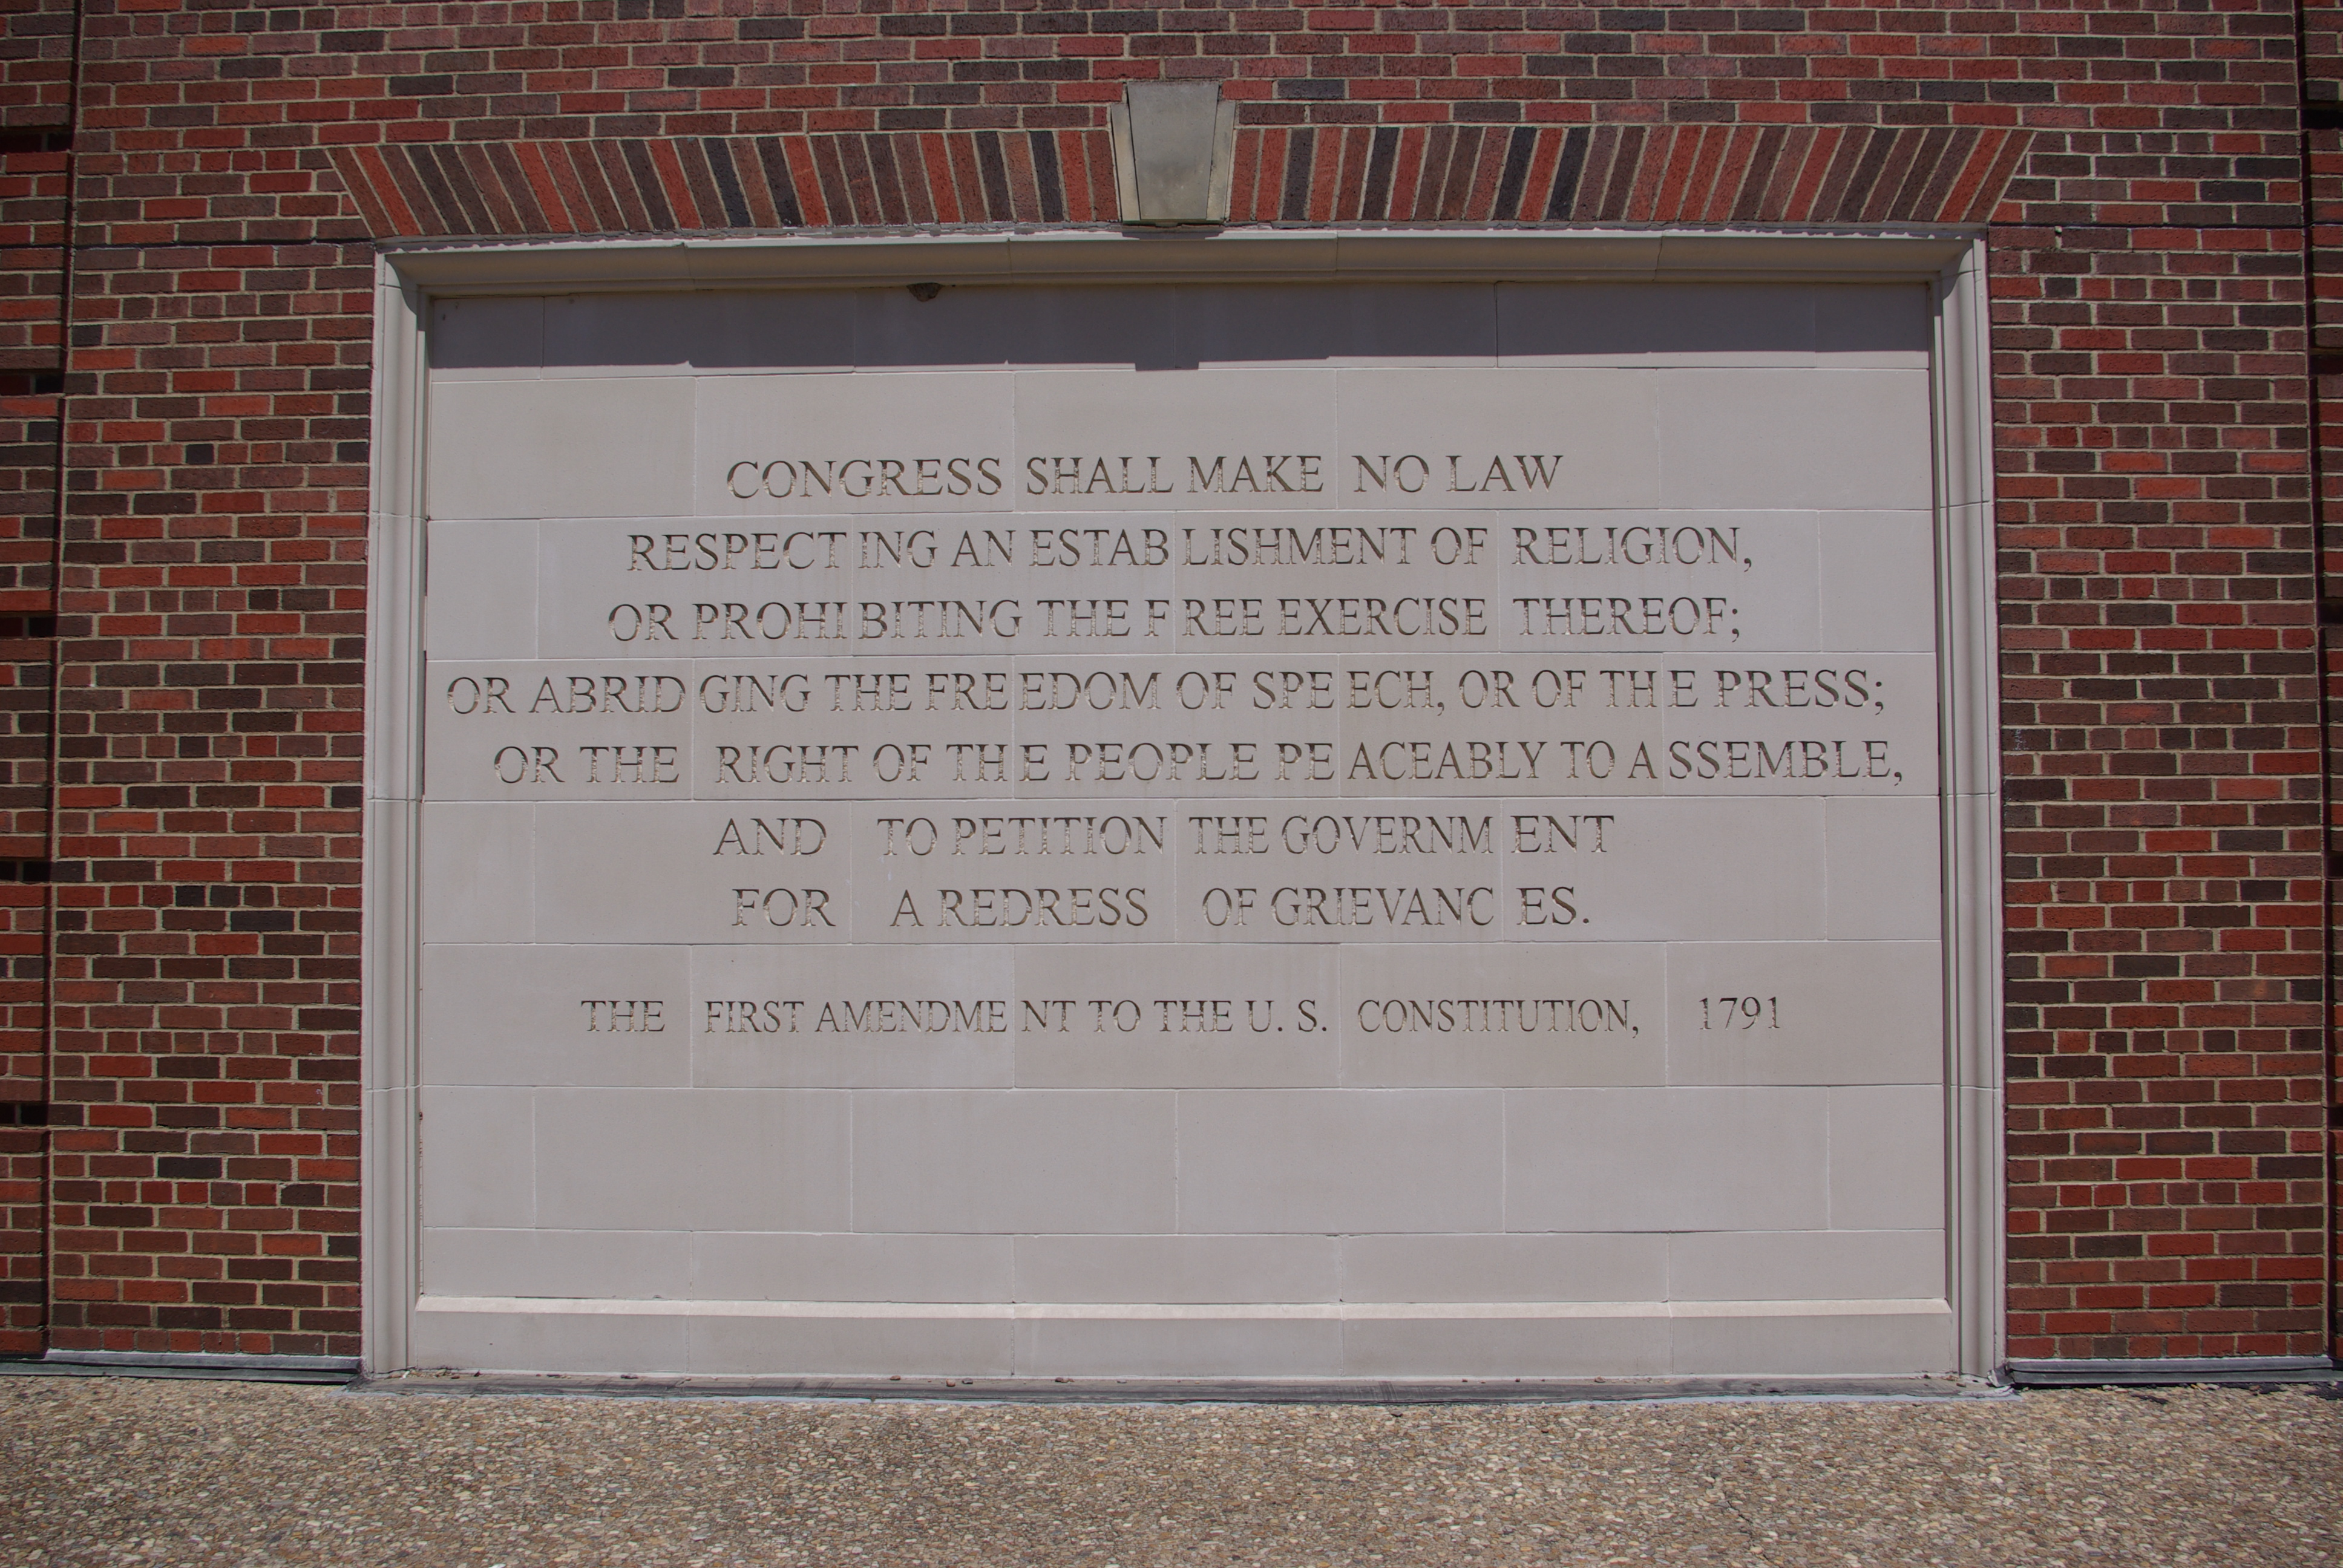 Here in Texas, we have the First Amendment engraved in stone, at Southern Methodist University.